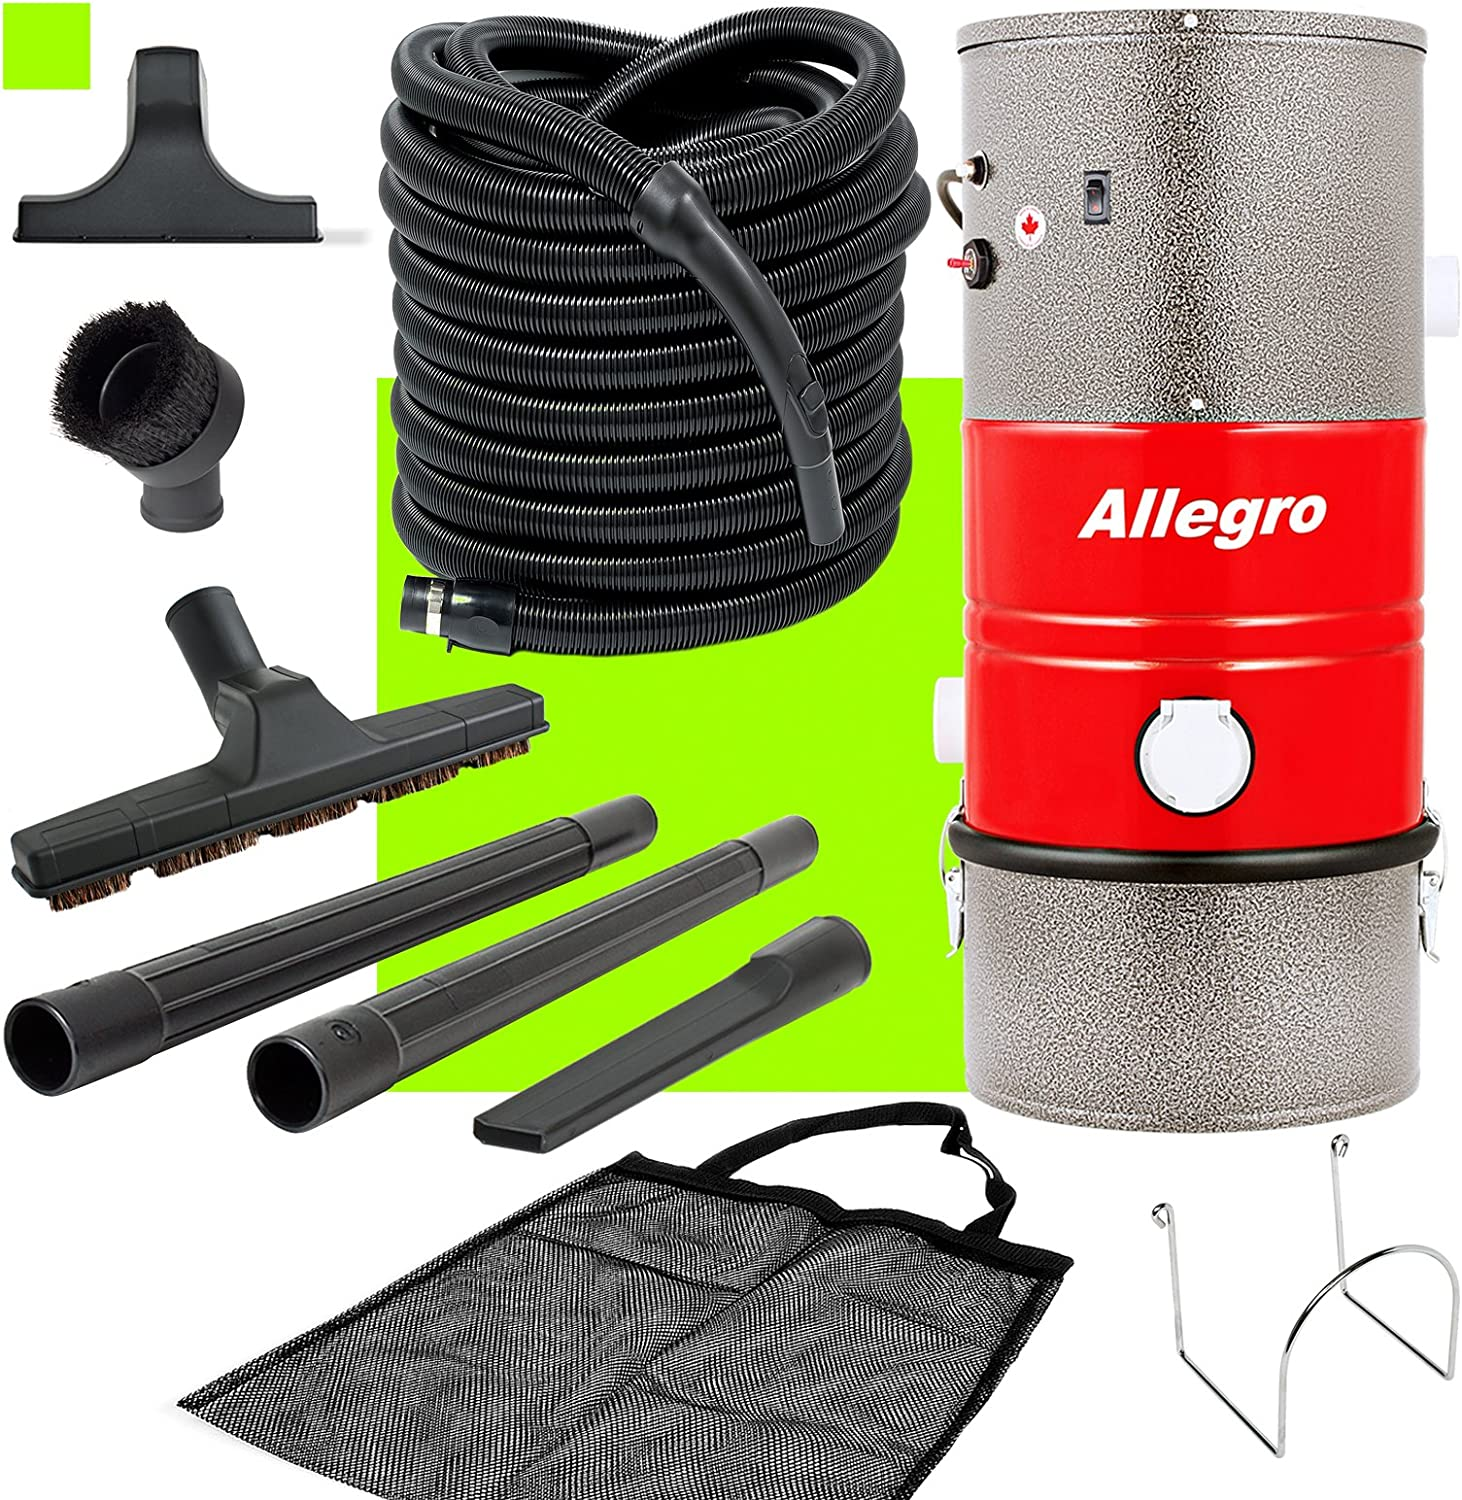 Allegro Poco PKU31001 Allegro MU3100 Wall Mounted Garage and Car Vacuum with 30 Ft. Hose and Tools, Silver Grey/Red